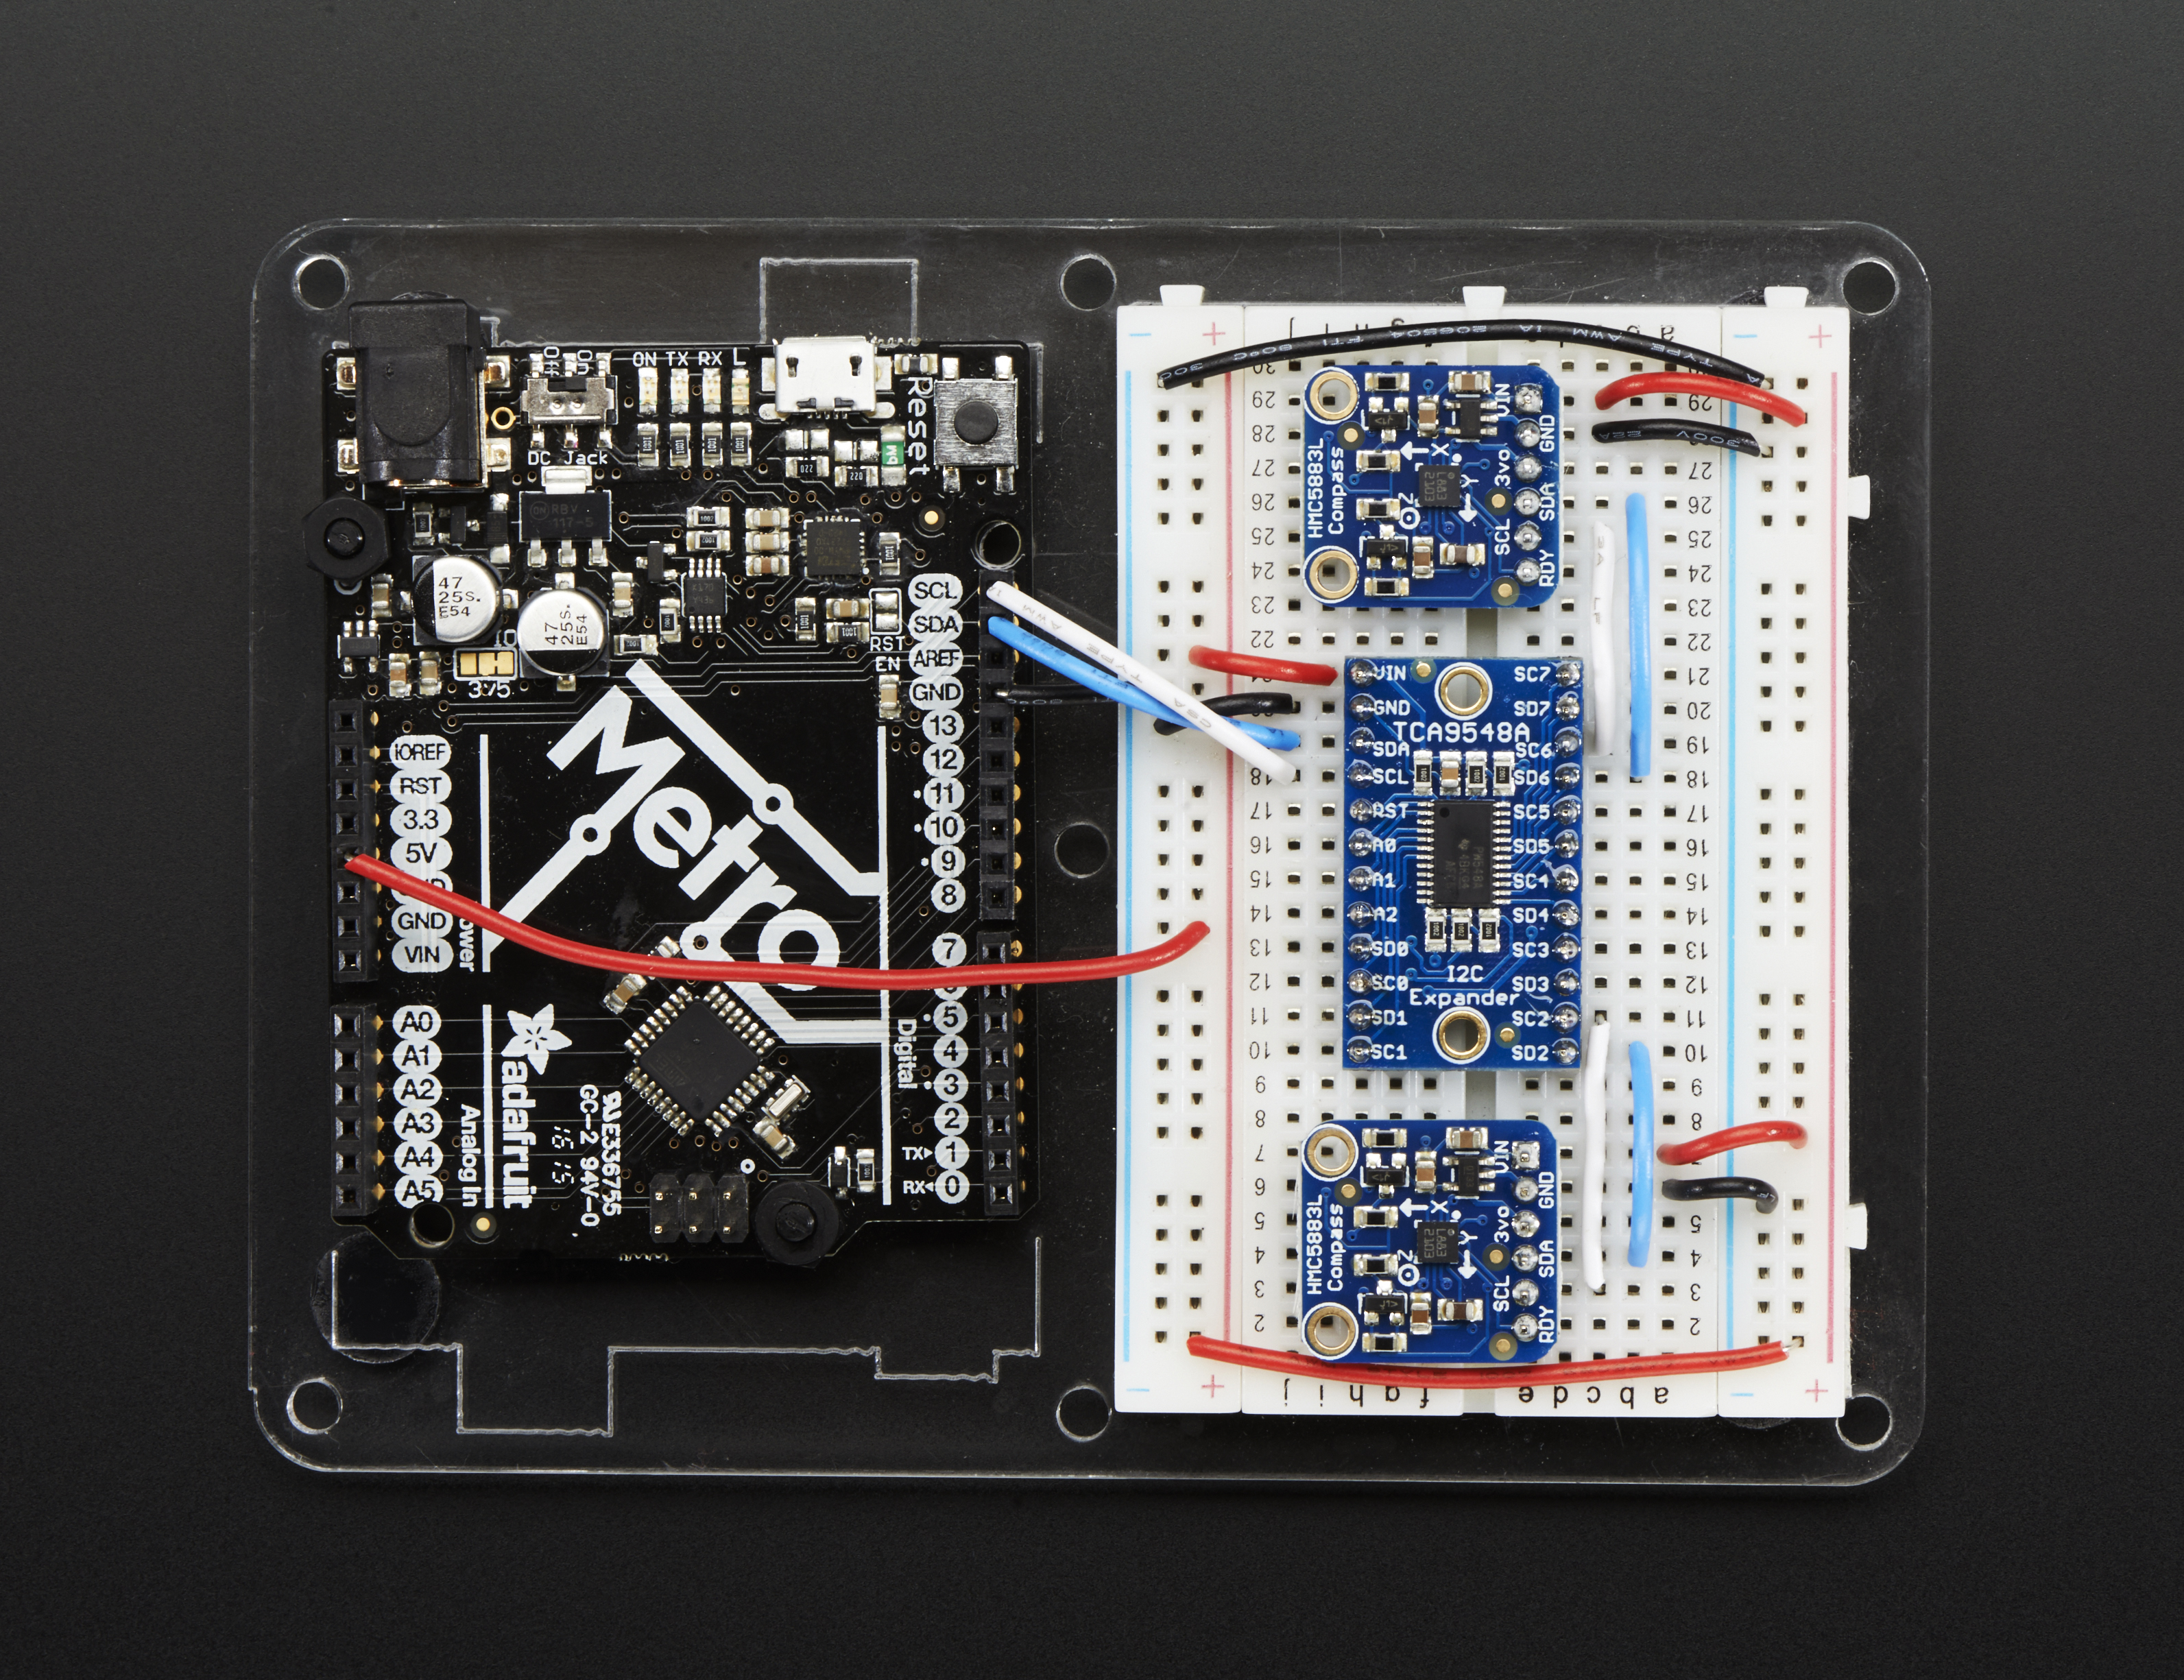 adafruit_products_Metro_Sensor_Demo_kitjk_ORIG.jpg